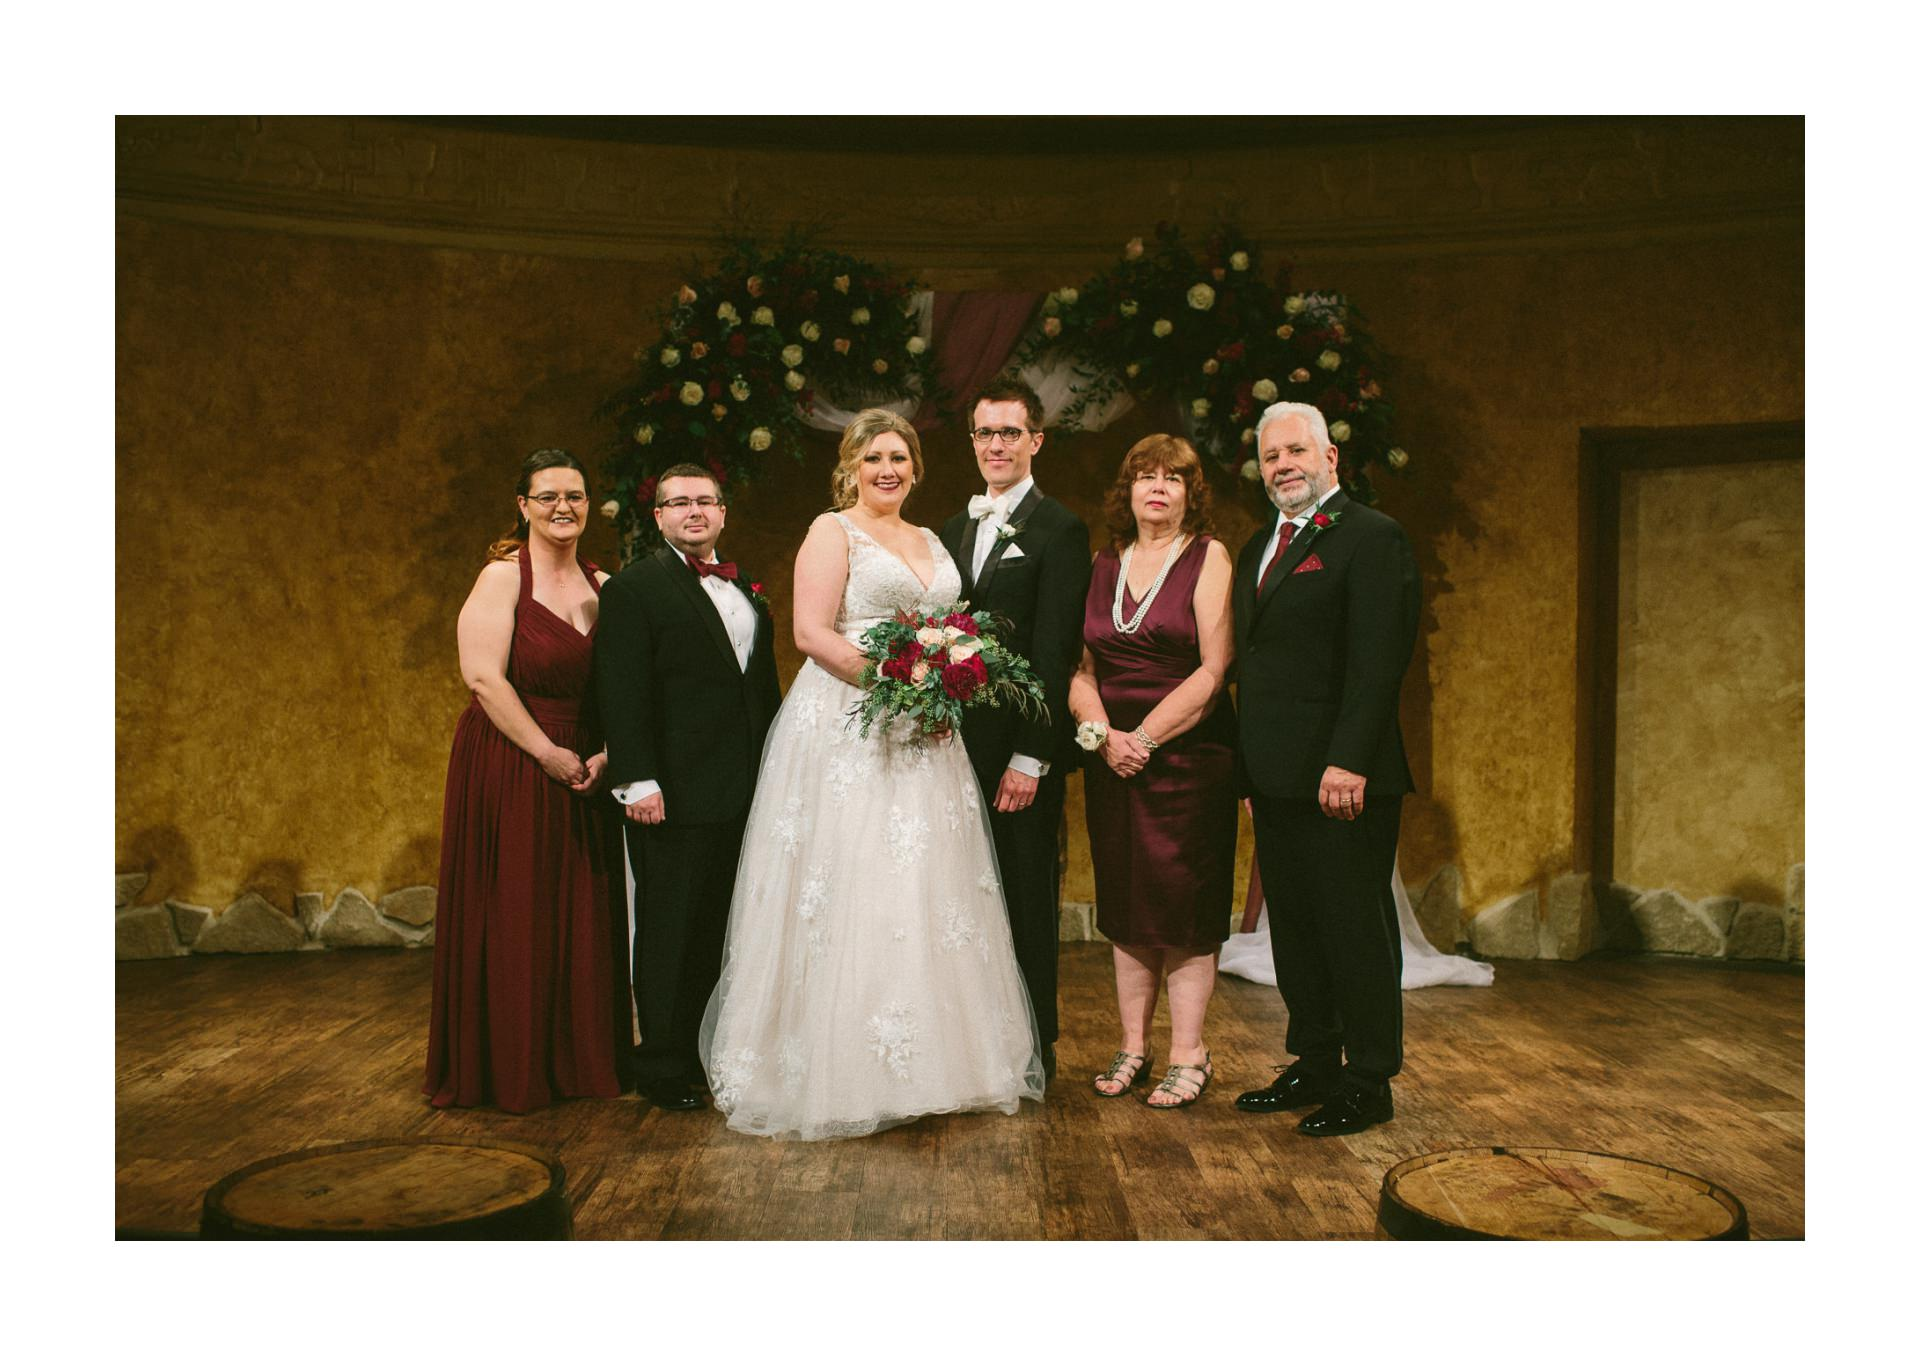 Cibreo Privato Wedding at Playhouse Square in Cleveland 2 8.jpg